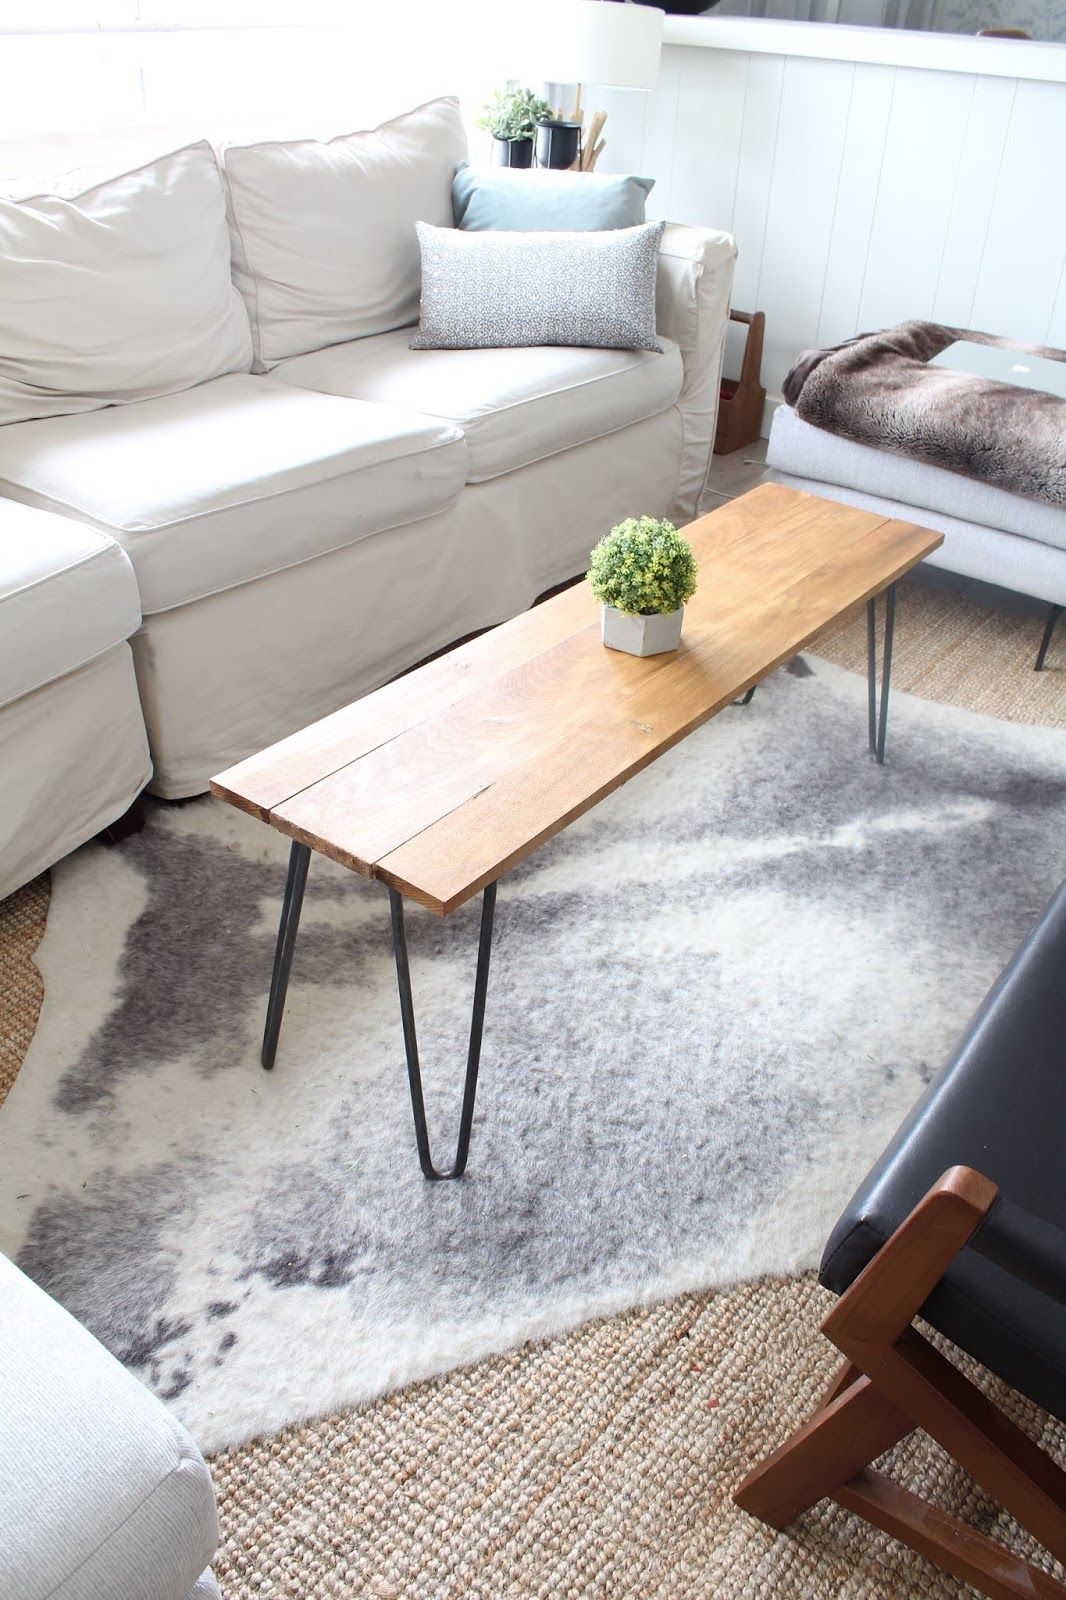 Diy Hairpin Leg Coffee Table With Remote Storage In 2020 Coffee